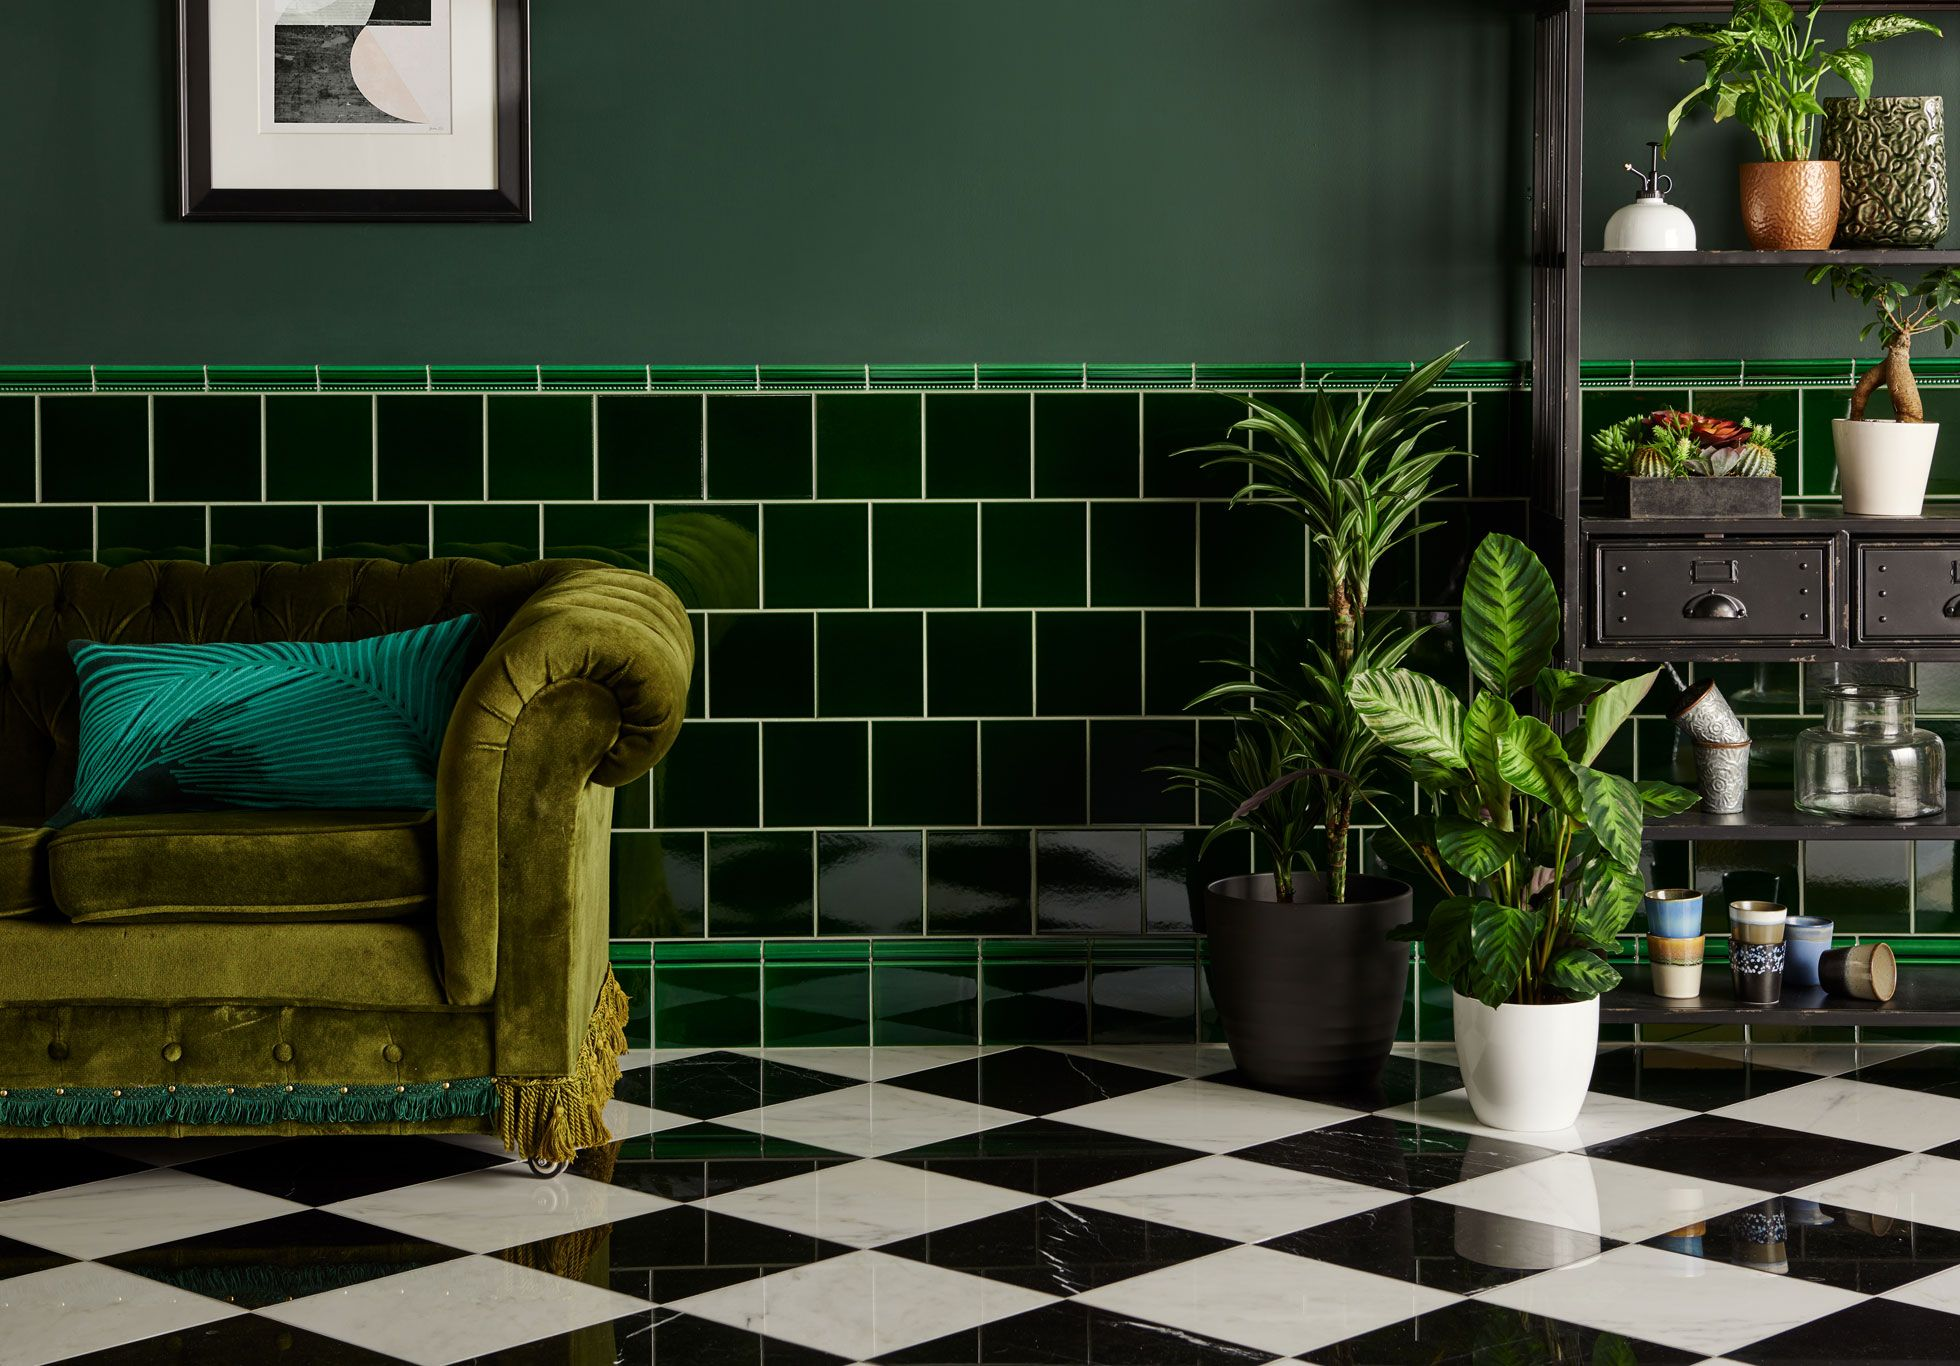 Image Result For Pub Green Victorian Tiles Green Tile Bathroom Green Bathroom Green Tile